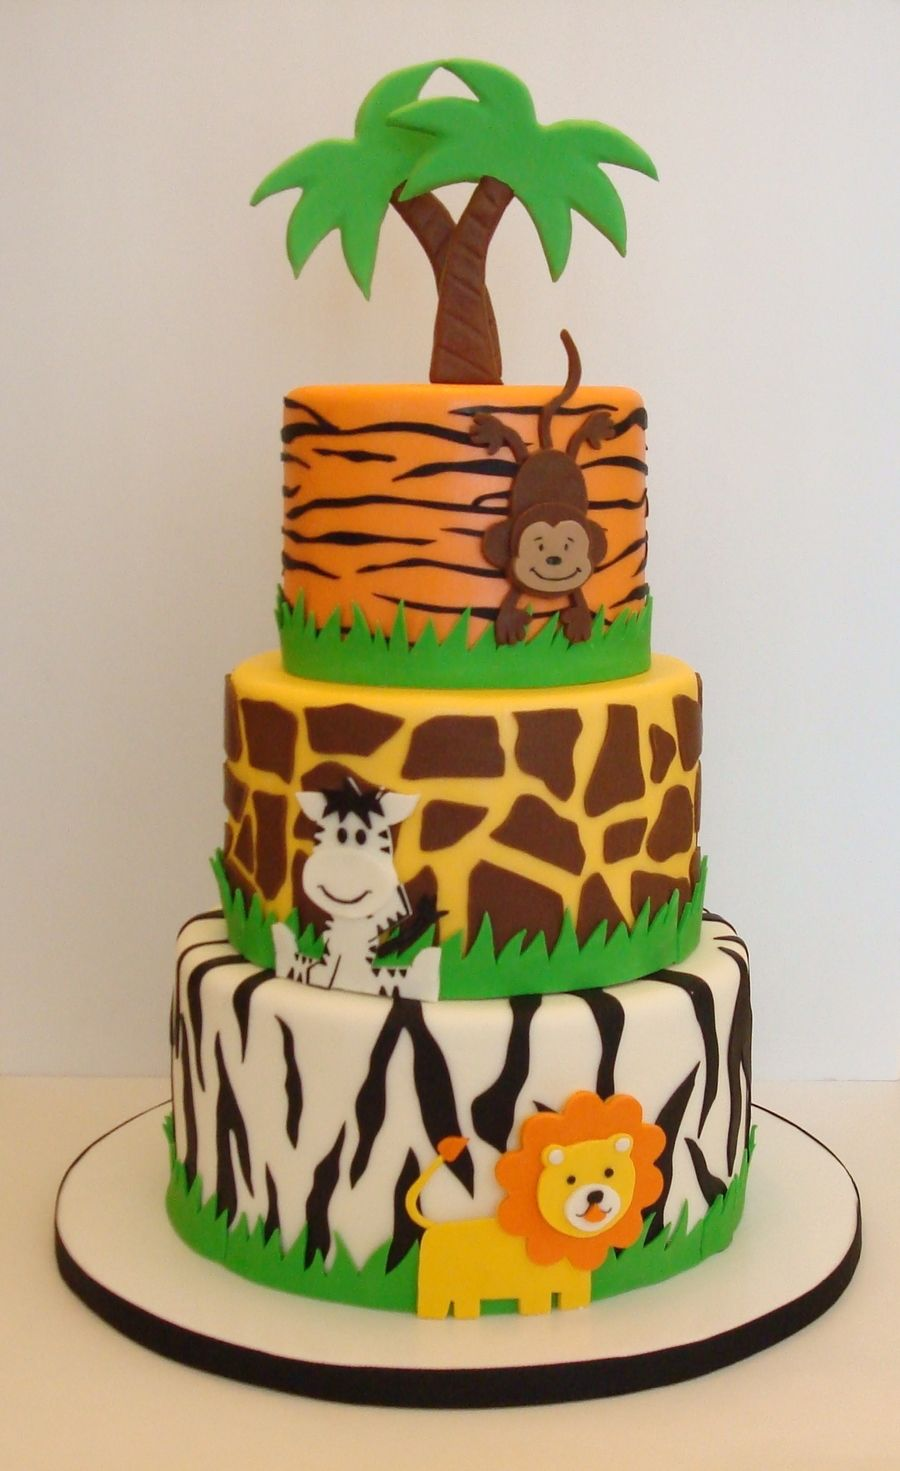 Cake Decorating Ideas Jungle Theme